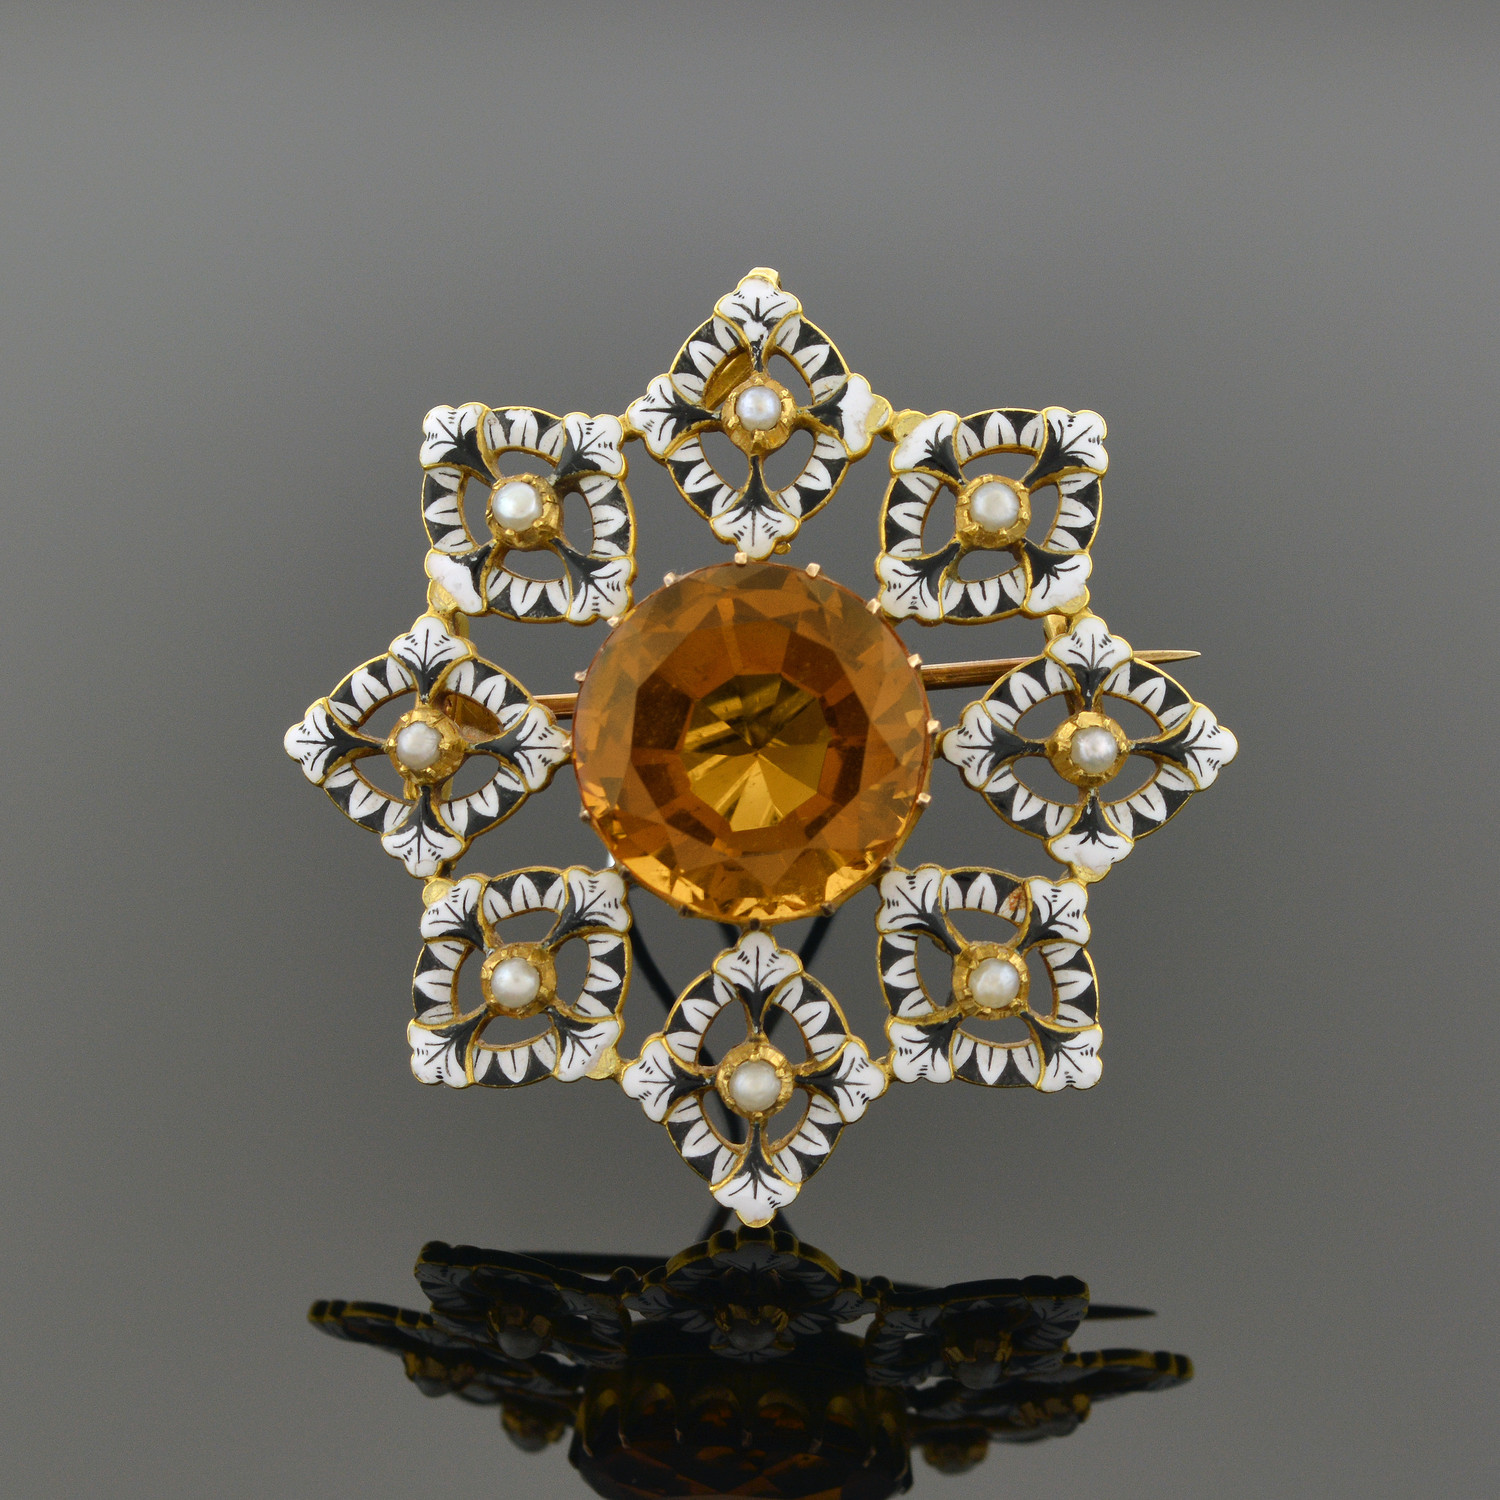 Renaissance-Revival Gold, Enamel, and Orange Zircon Brooch